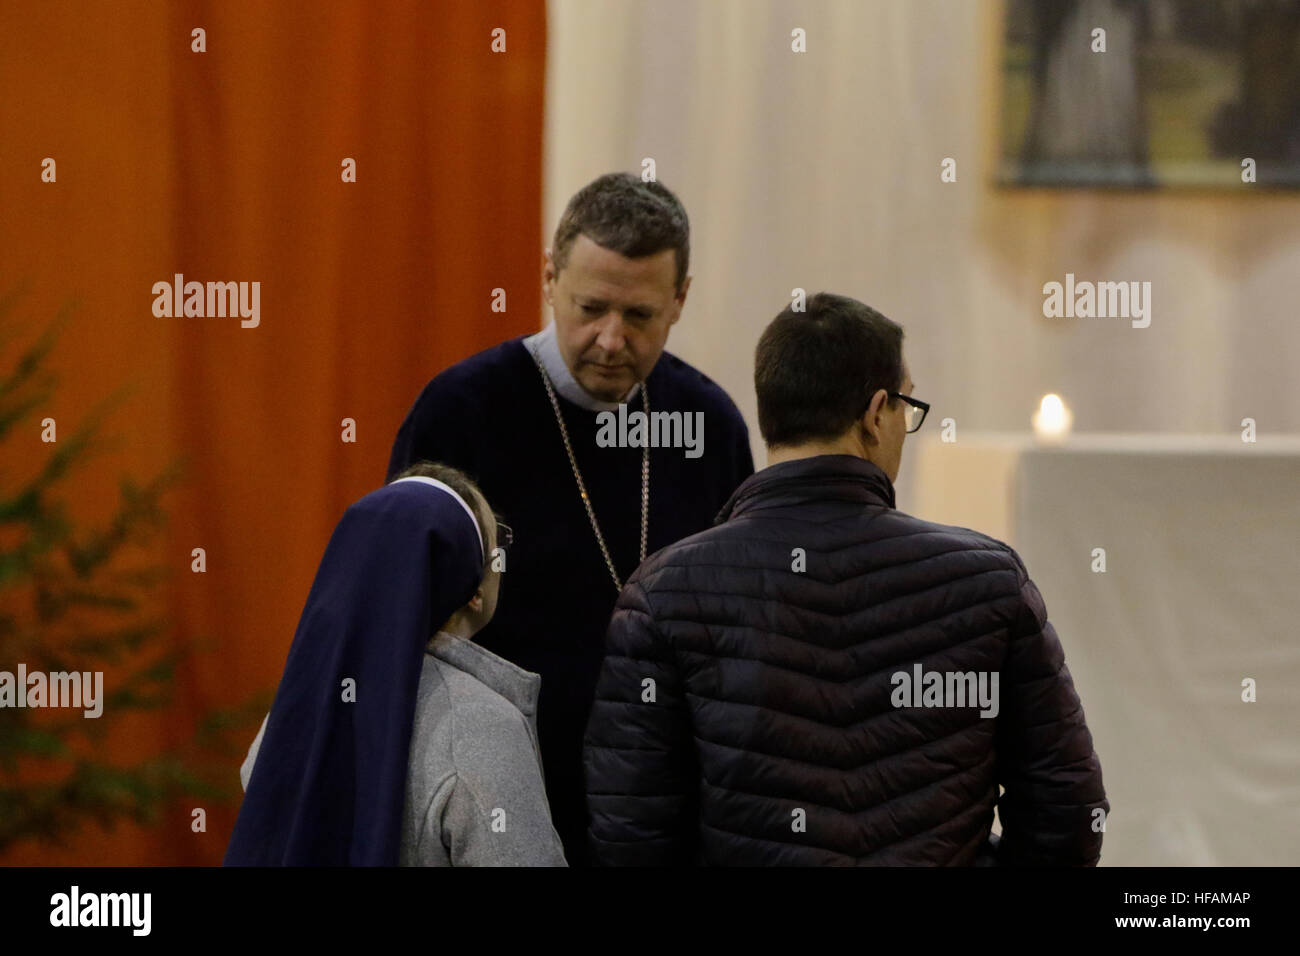 Riga, Latvia. 28th Dec, 2016. Alain de Raemy (centre), the bishop of the Roman Catholic Diocese of Saint-Die in - Stock Image